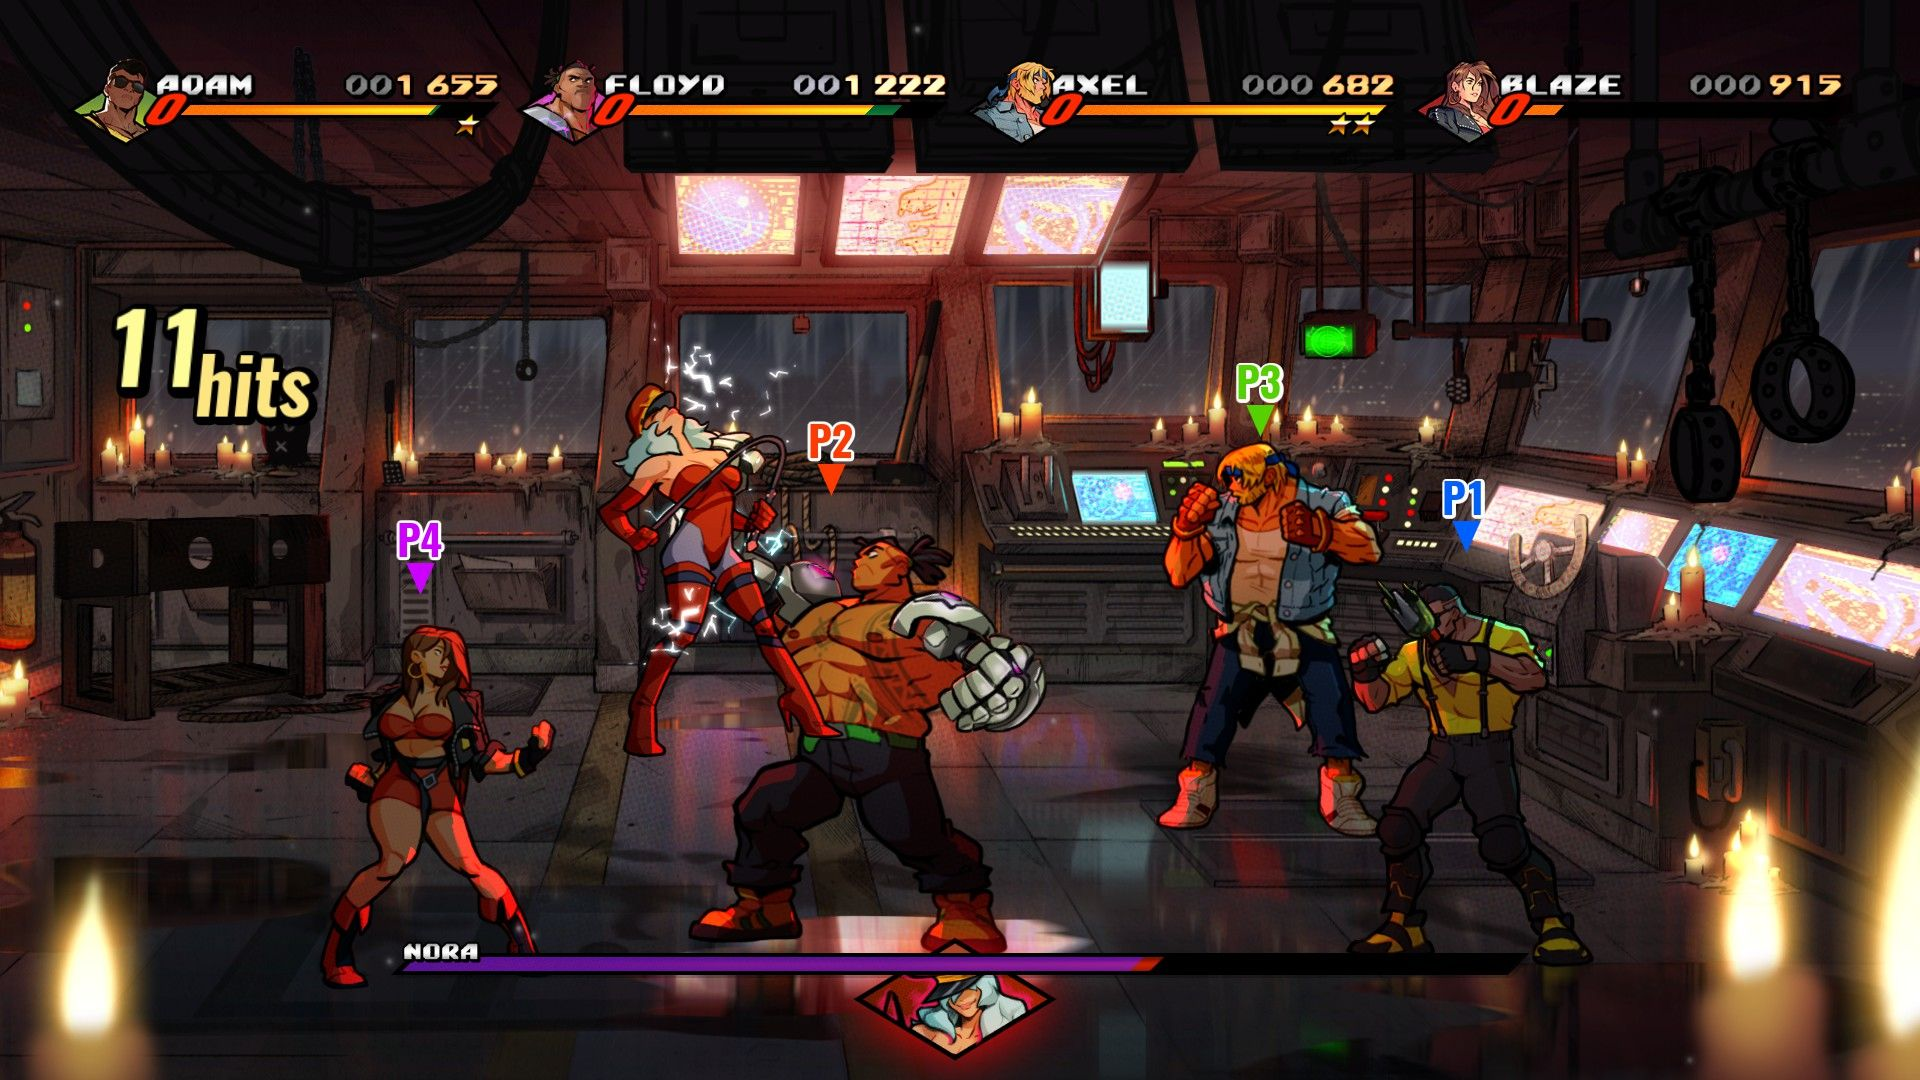 A screenshot of a boss fight: four players are ranged around a what looks like a control deck on a ship, as the Streets Of Rage characters Adam, Floyd, Axel and Blaze. The boss is a woman in red thigh highs and a strapless red bustier, kind of like a combat ready Jessica Rabbit